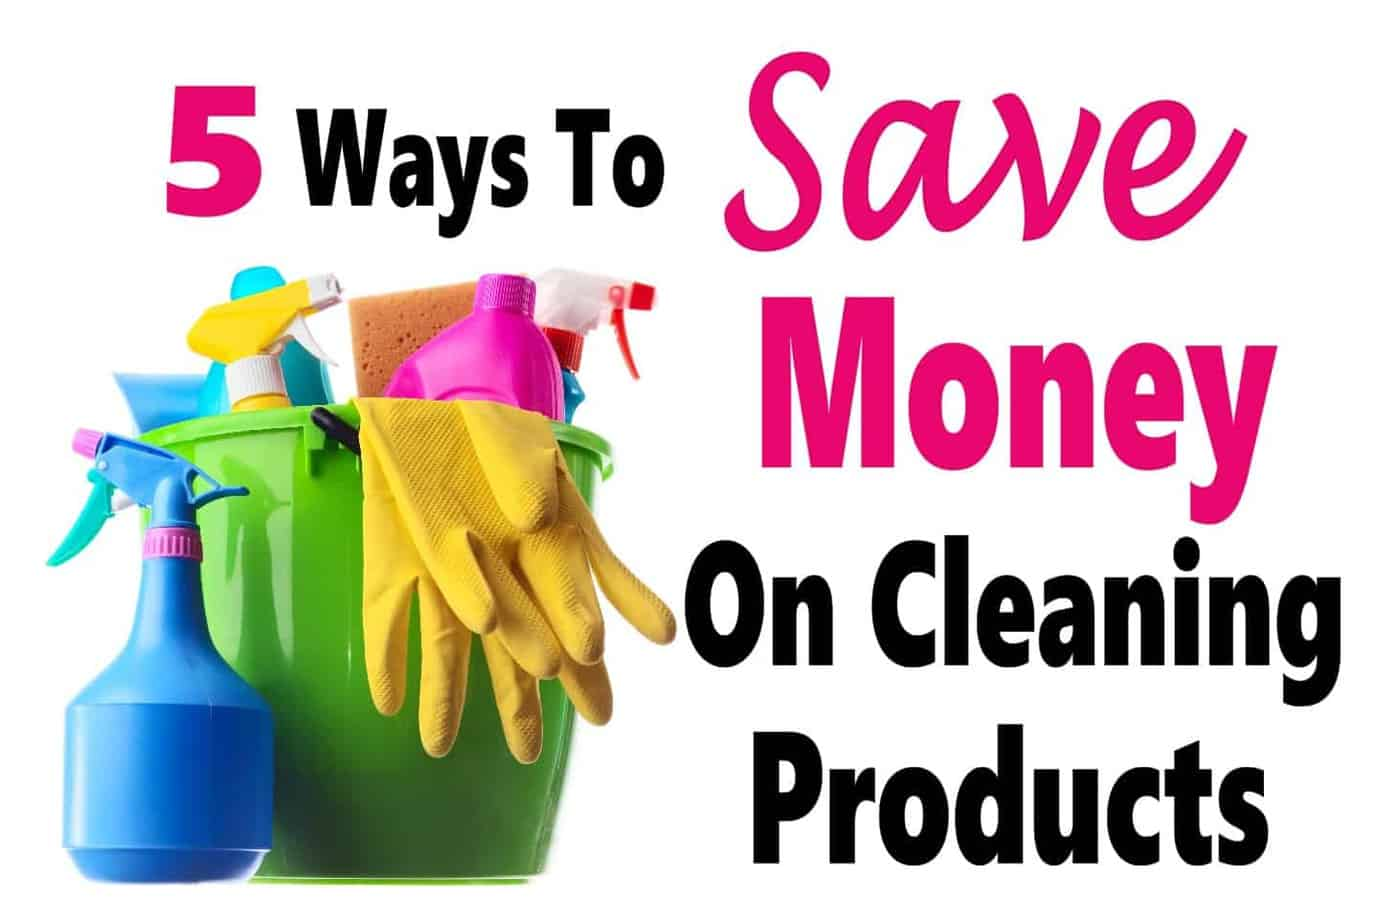 5 Ways To Save Money On Cleaning Products ~ Cleaning products are expensive, luckily there are many thing we can do to save money. Click over for 5 easy ways to save money on cleaning products. save money | money | cleaning products | DIY | cleaning hacks | cleaning #money #cleaninghacks #DIY #finance